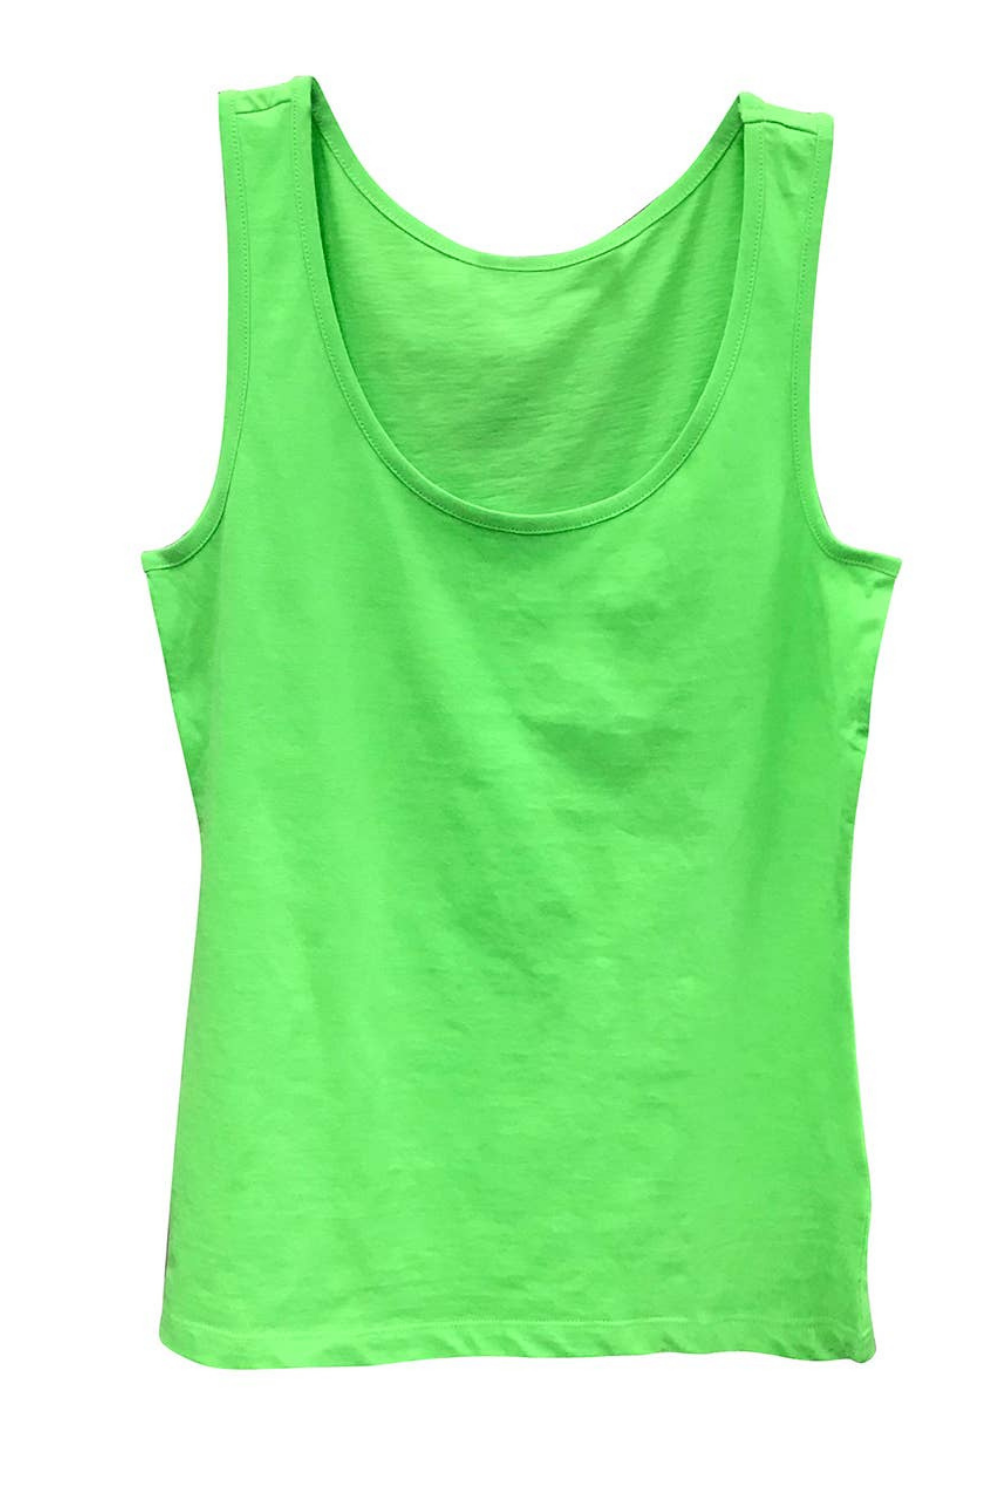 Boutique Tank Top Fluorescent Green | Bella Lucca Boutique